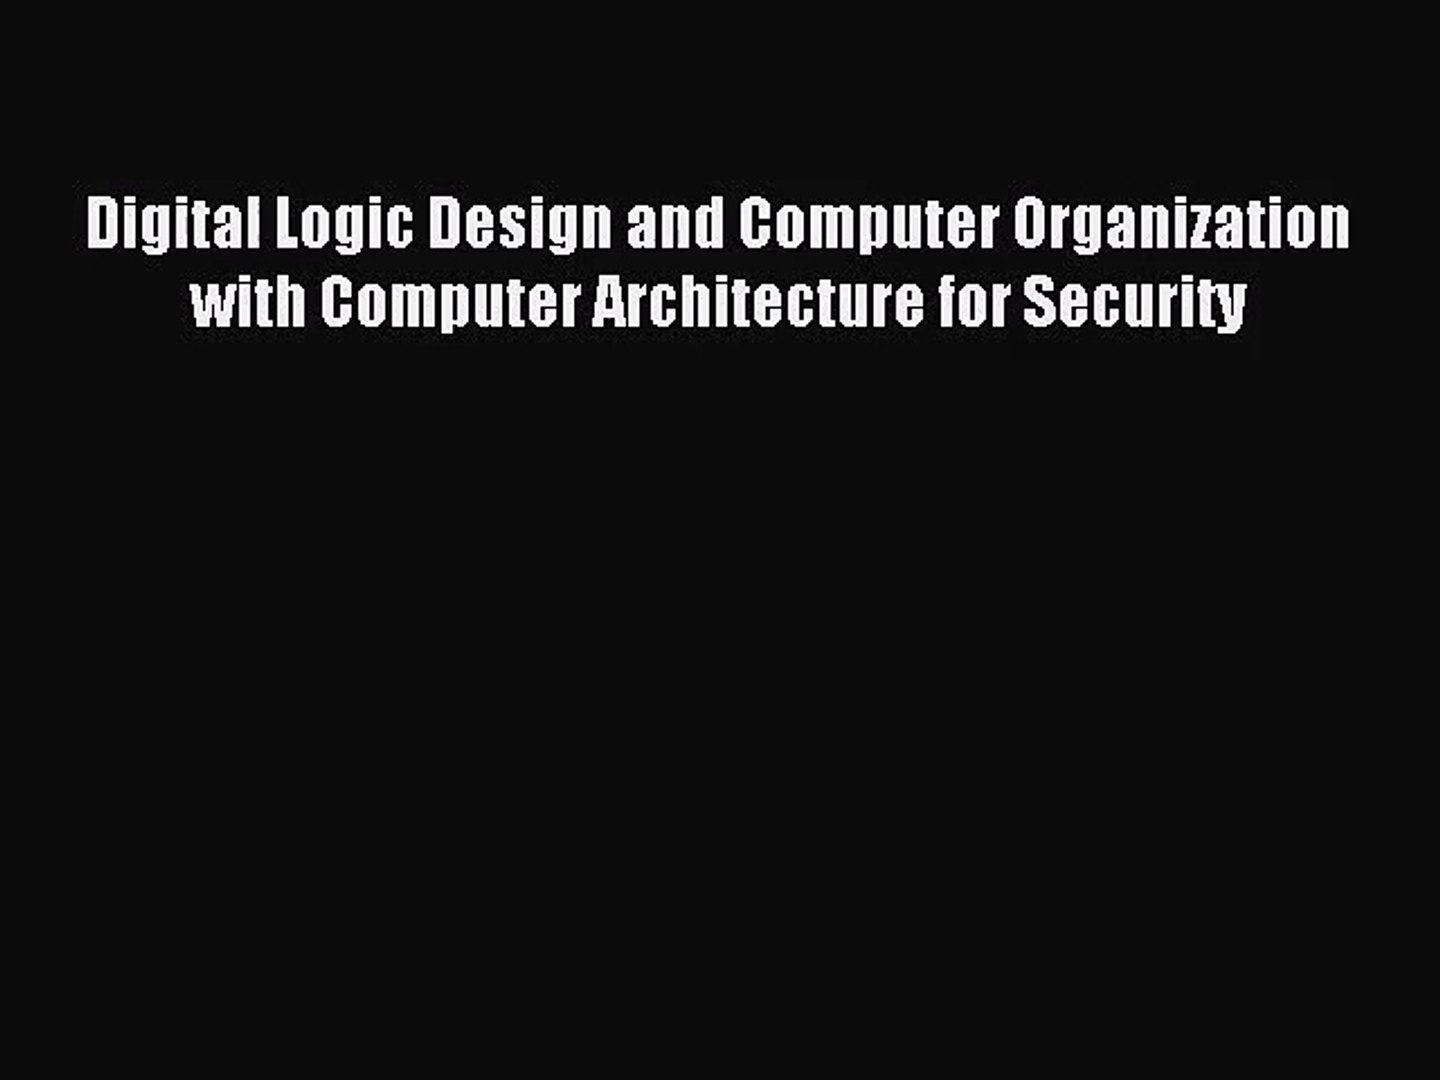 Pdf Download Digital Logic Design And Computer Organization With Computer Architecture For Video Dailymotion